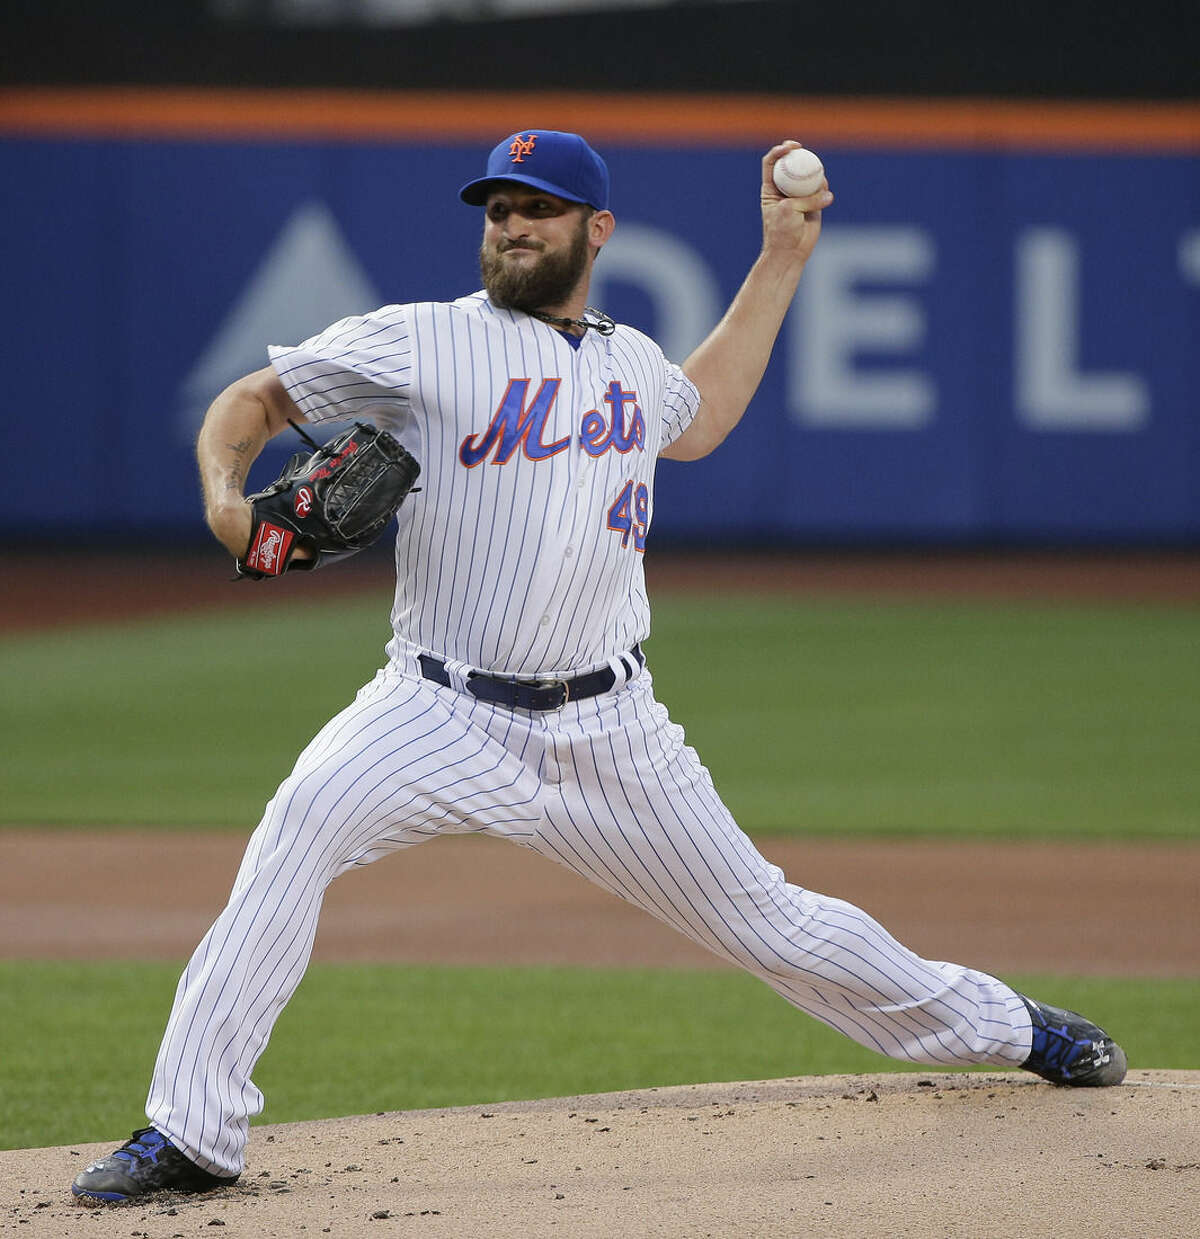 New York Mets pitcher Jonathon Niese delivers against the Colorado Rockies during the first inning of a baseball game, Monday, Aug. 10, 2015, in New York. (AP Photo/Julie Jacobson)